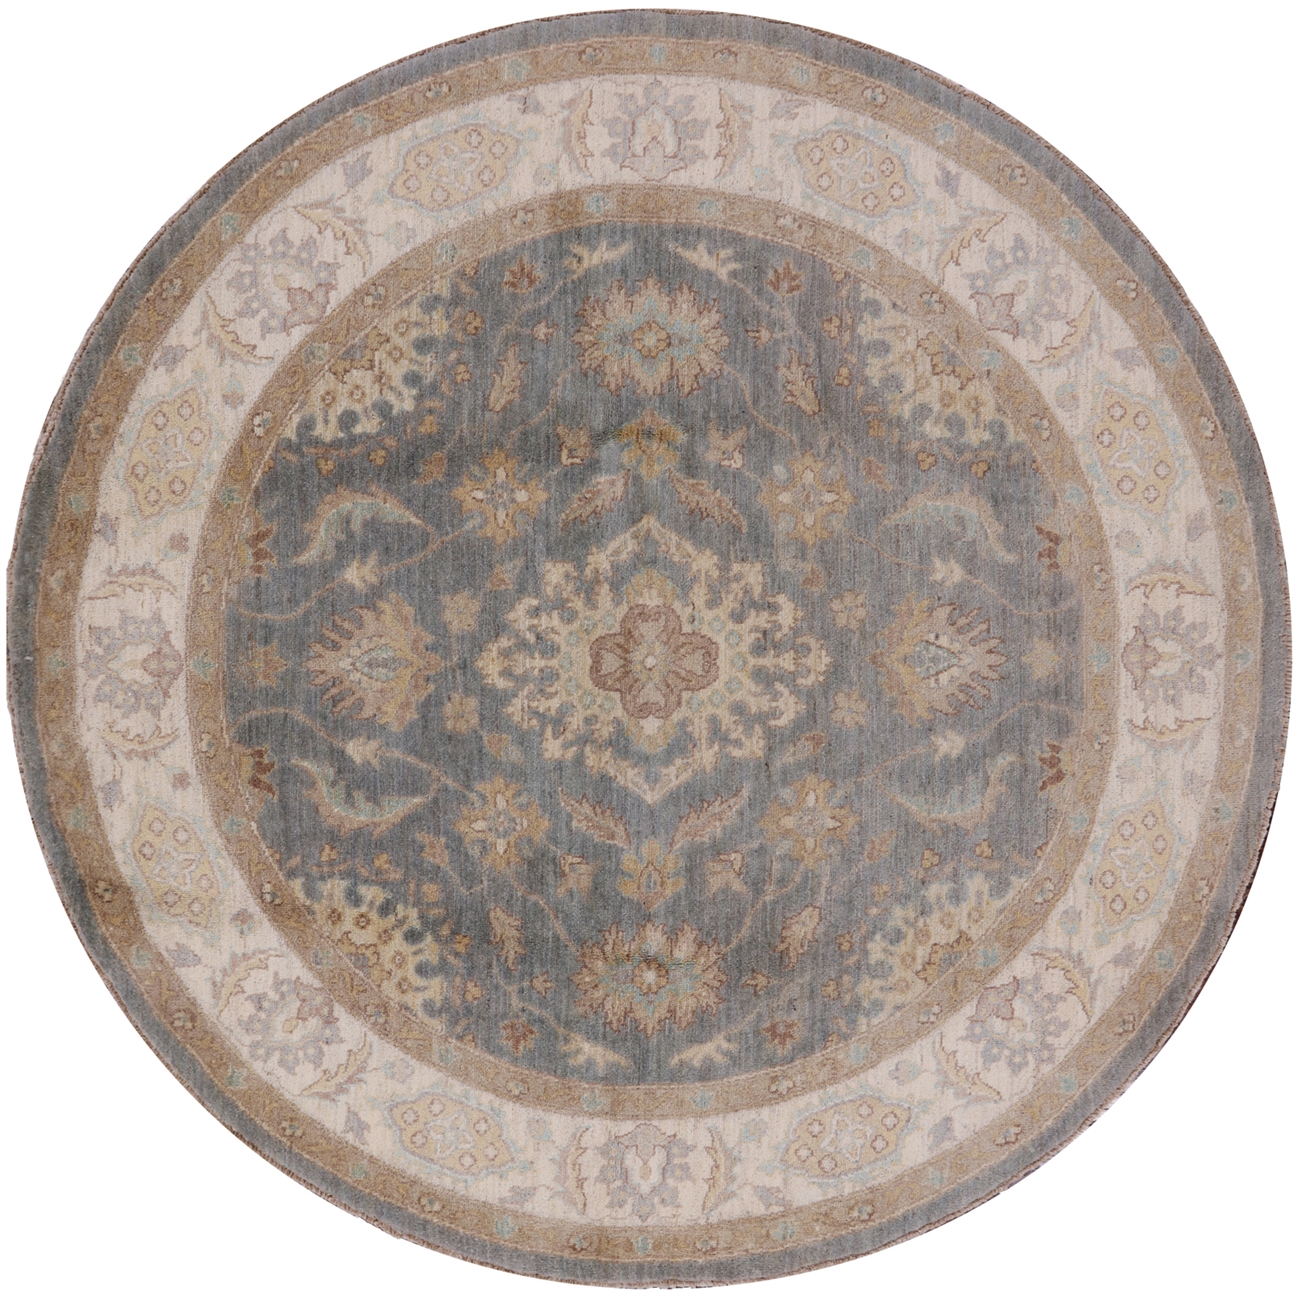 New Persian Hand Tufted Wool Oval Area Rug: New 6' Round Oriental Peshawar Blue Chobi Knotted By Hand